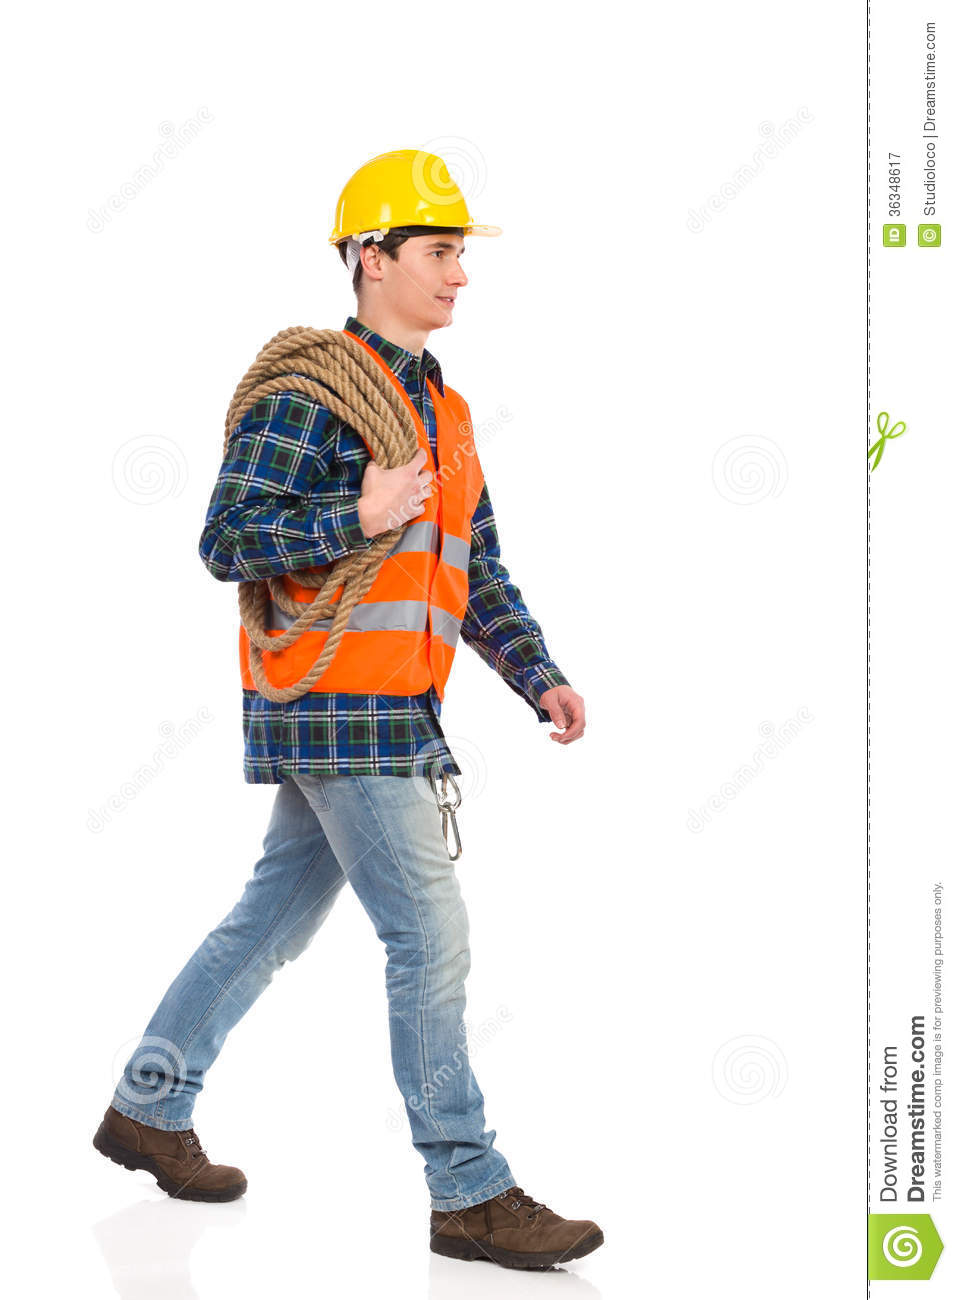 All female construction workers are lesbian 5